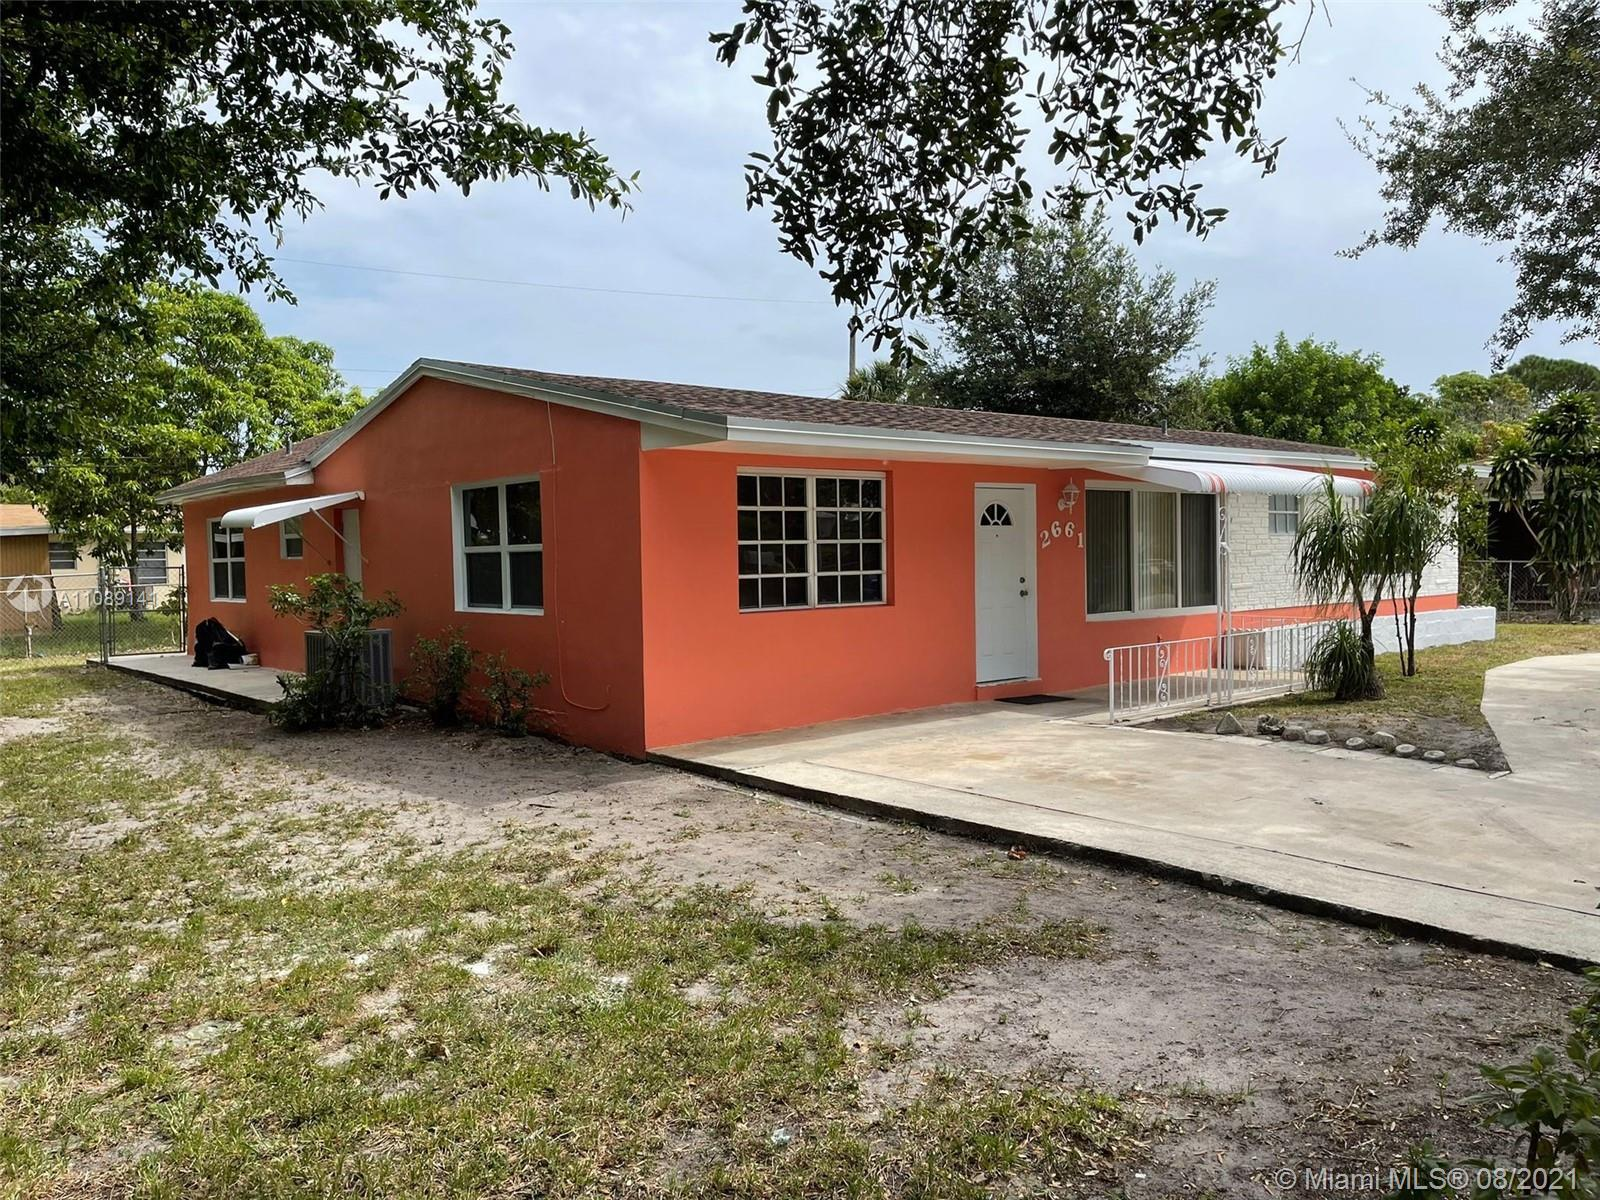 4 BEDROOMS, 3 BATHROOMS SINGLE-FAMILY HOME. FRESHLY PAINTED. TILED THROUGHOUT. EQUIPPED WITH WASHER